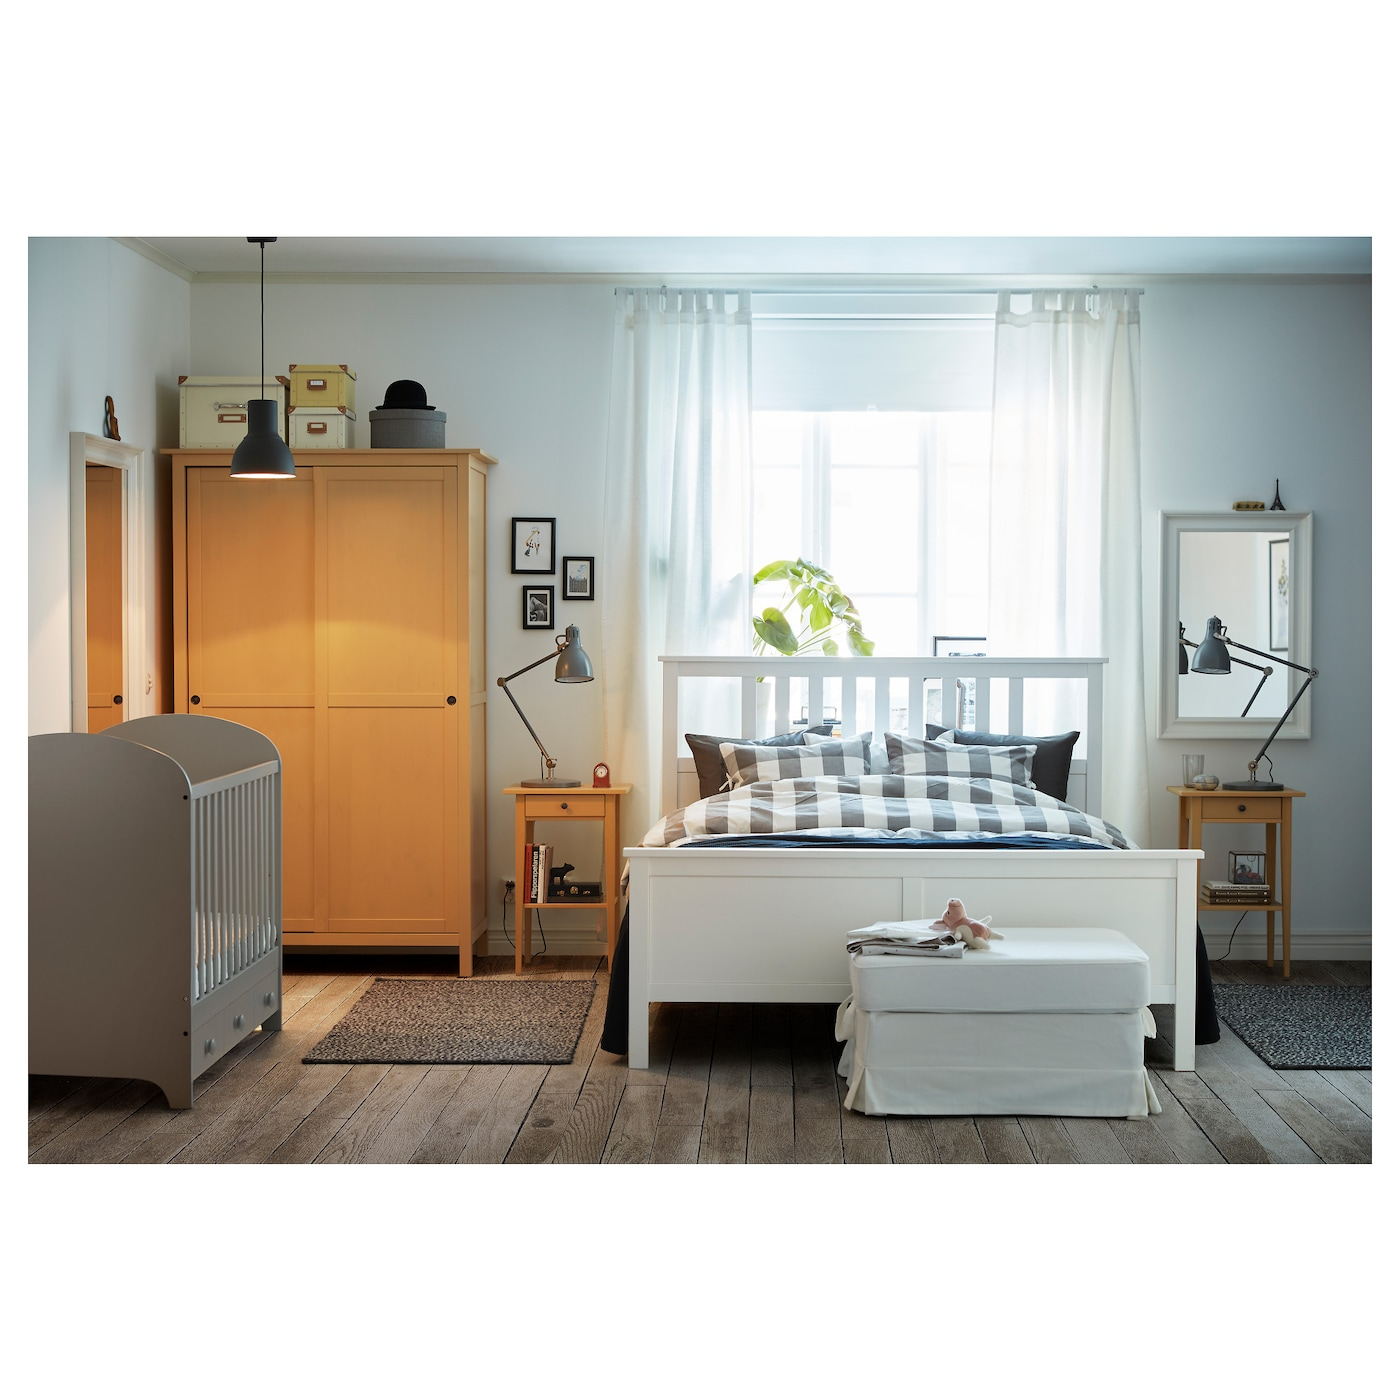 Ikea Hemnes Bett 160×200 Pictures to pin on Pinterest